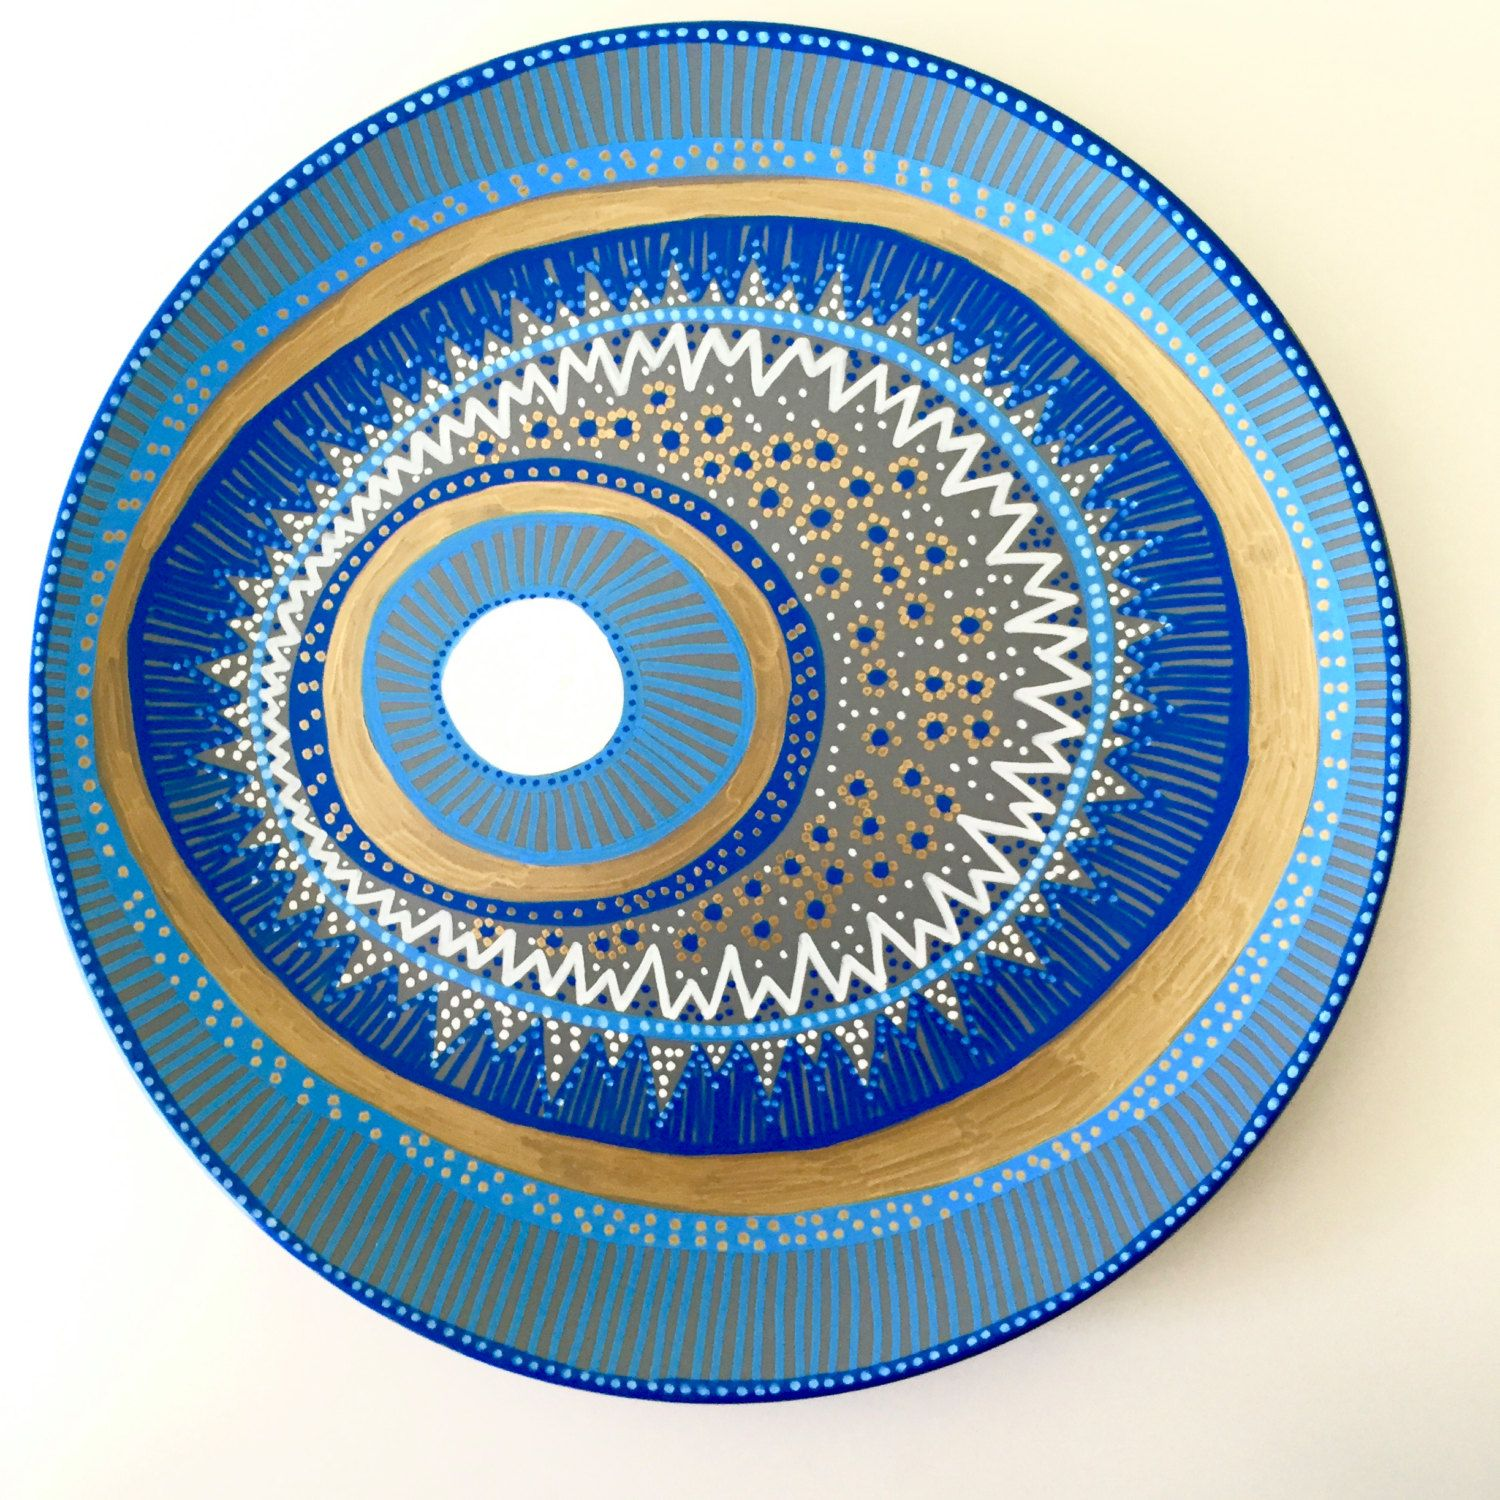 Decorative Plate - Evil Eye Wall Decor - Original hand-painted Artwork - Wall Hanging  sc 1 st  Pinterest & Decorative Plate - Evil Eye Wall Decor - Original hand-painted ...